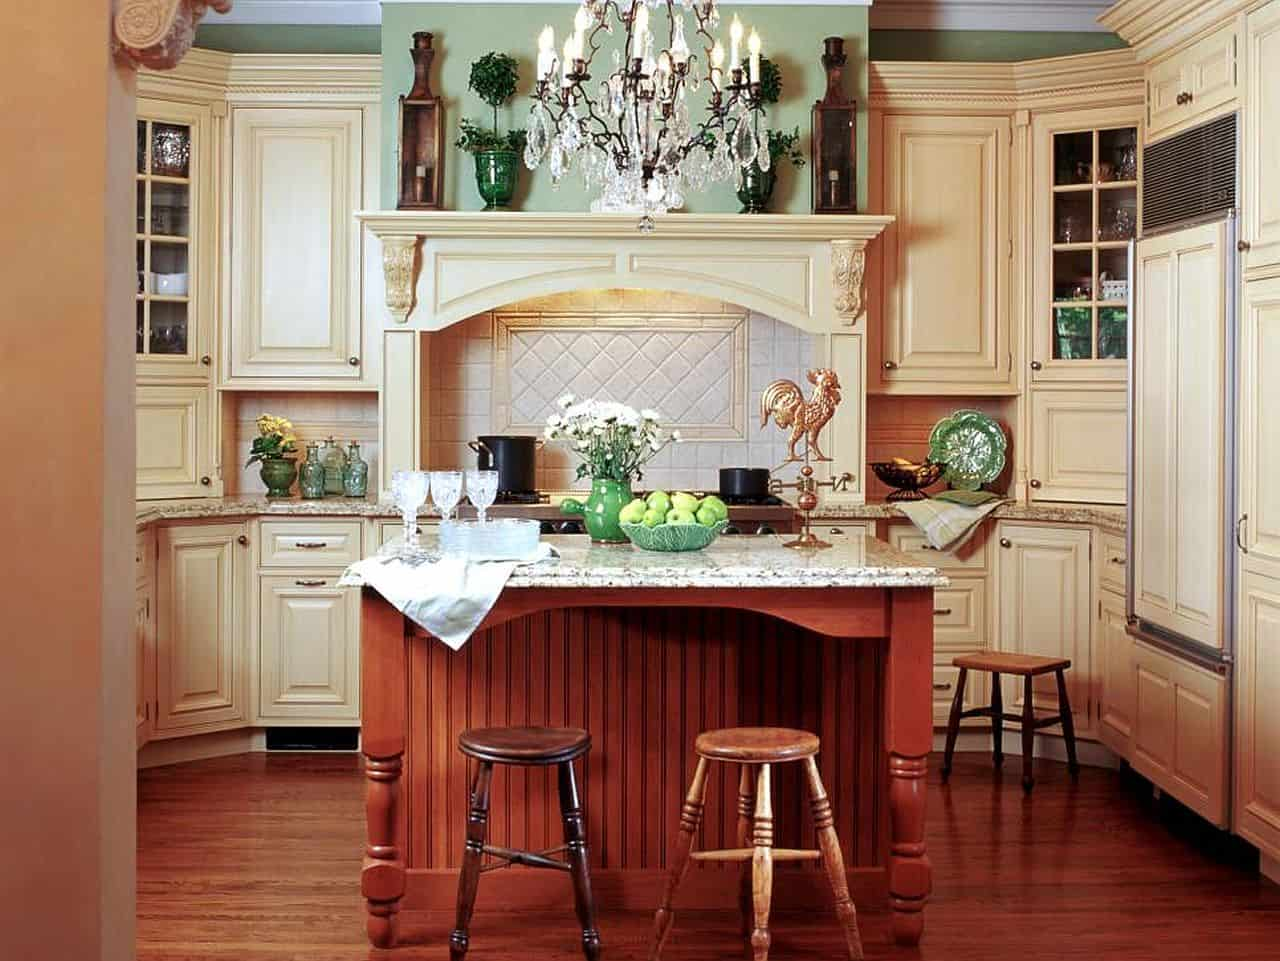 Vintage Feel with Mixed Wood Finishes